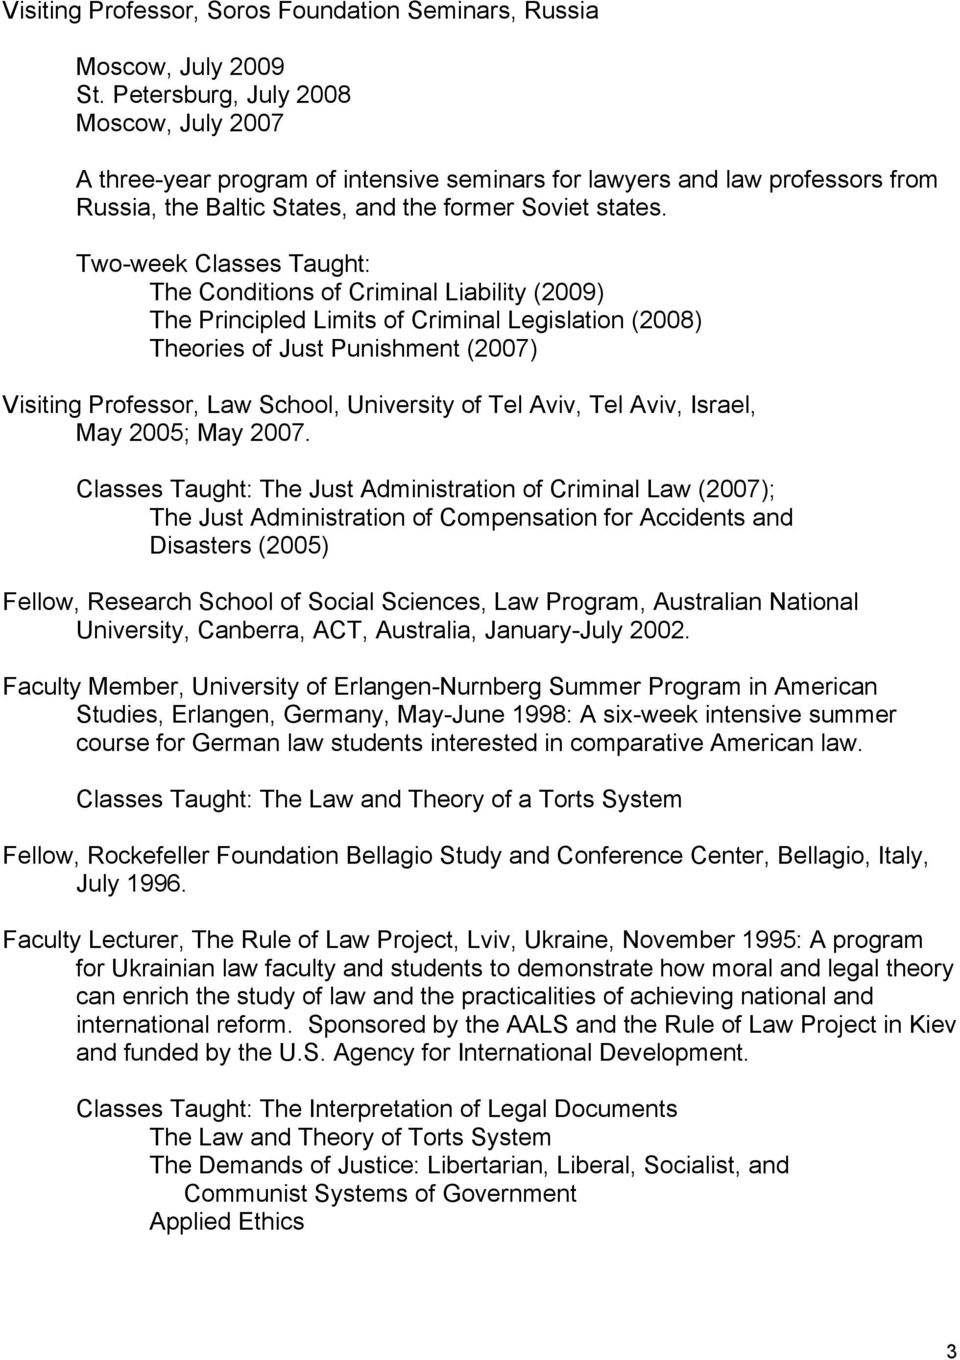 Two-week Classes Taught: The Conditions of Criminal Liability (2009) The Principled Limits of Criminal Legislation (2008) Theories of Just Punishment (2007) Visiting Professor, Law School, University